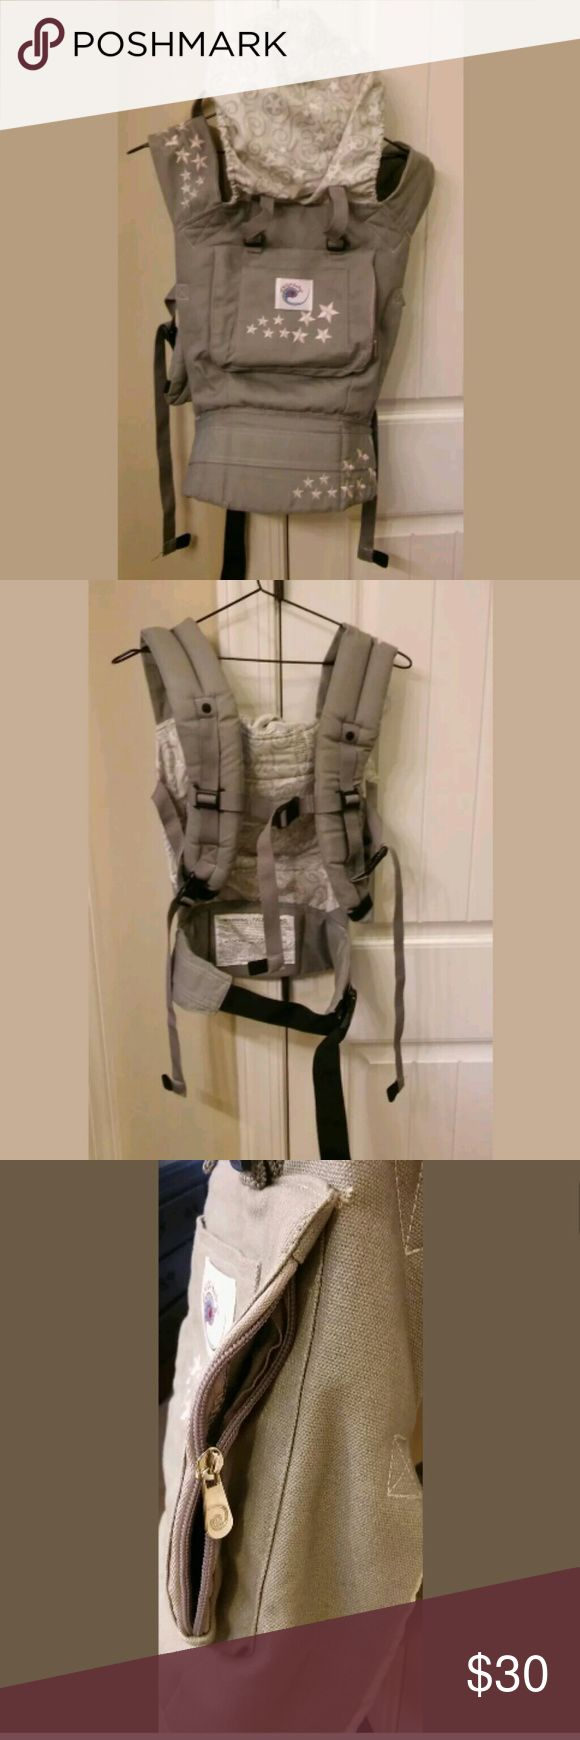 Ergo galaxy baby carrier Only issue is zipper on front pocket is off track. It was like that when I purchased. Used with listed carrier cover to add more warmth. Bundle & Offers welcome. Ergo baby Accessories